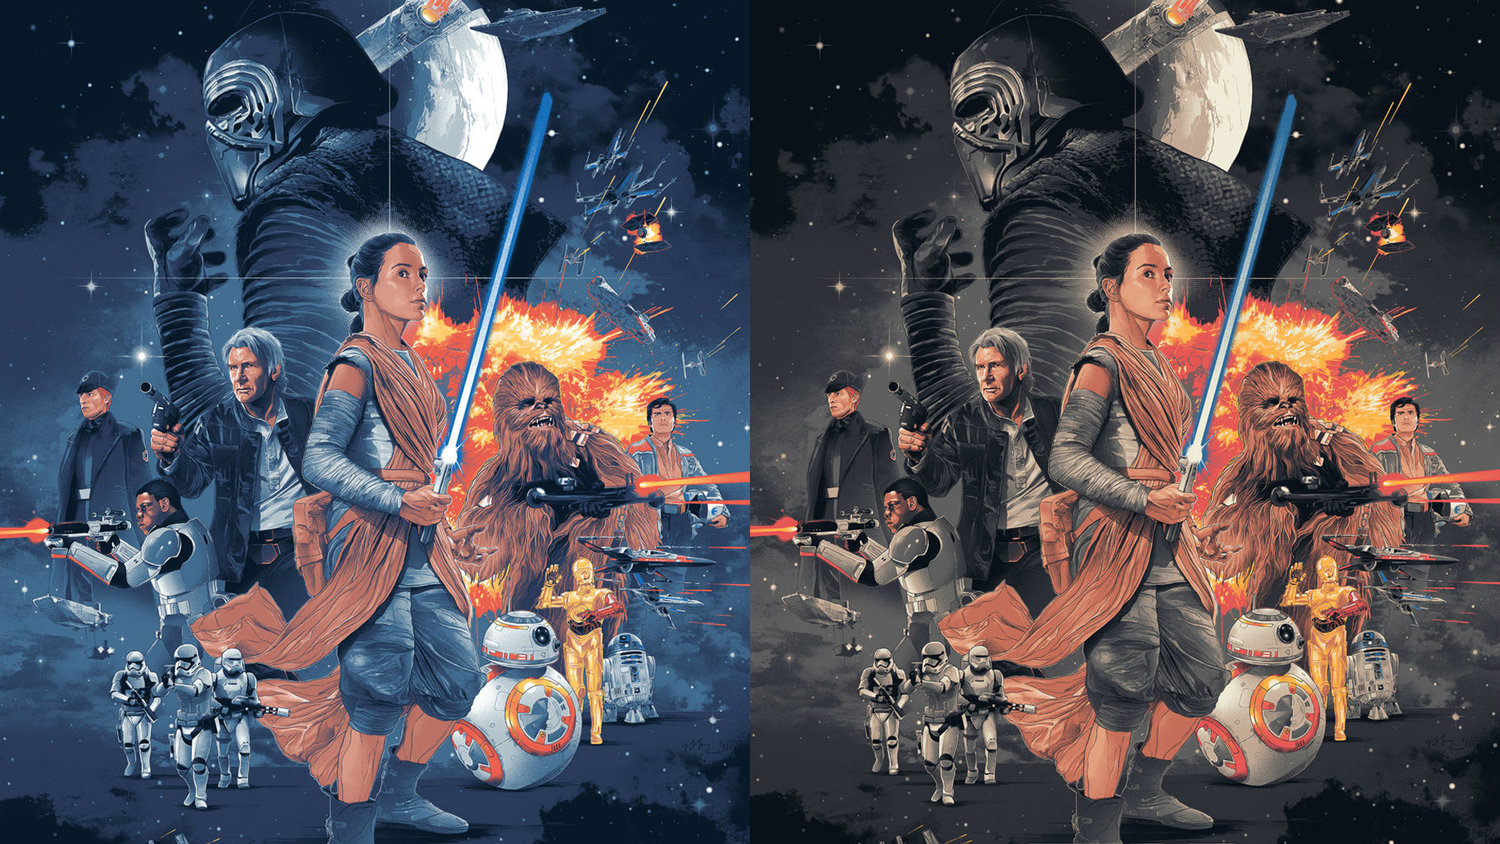 You Can Own This Awesome STAR WARS: THE FORCE AWAKENS Poster